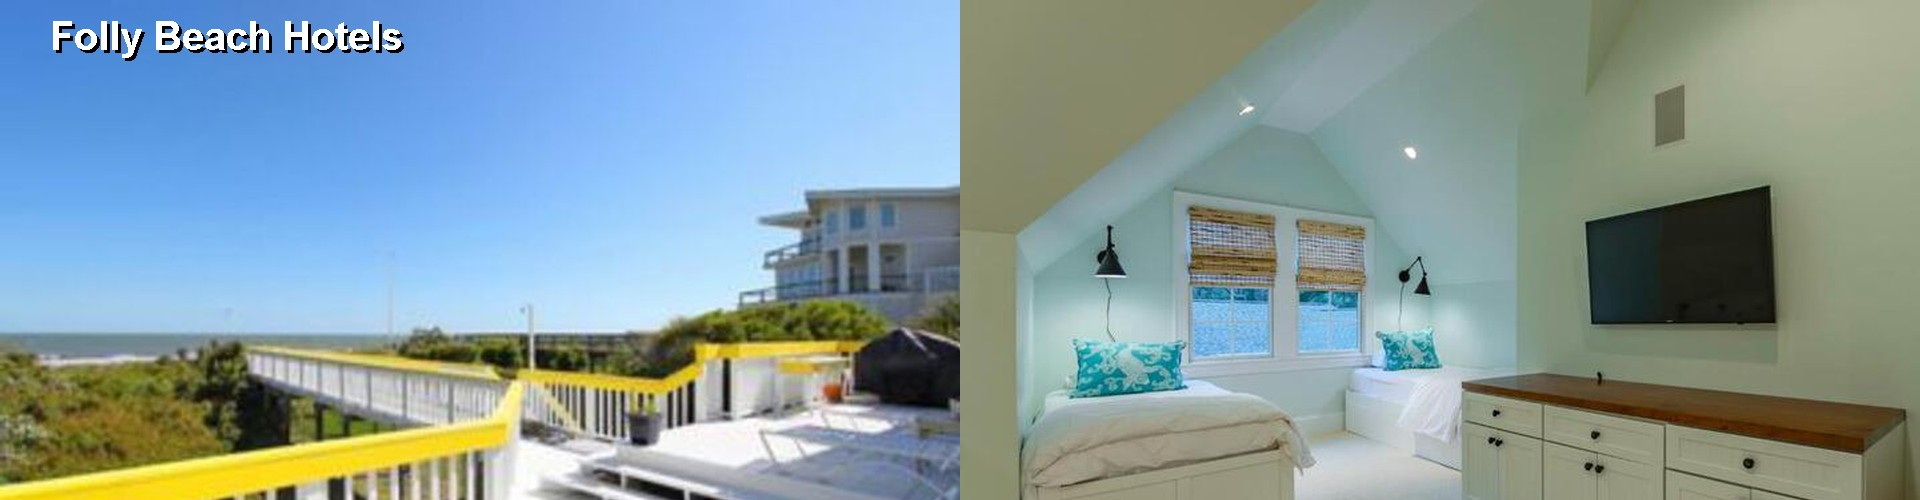 5 Best Hotels near Folly Beach